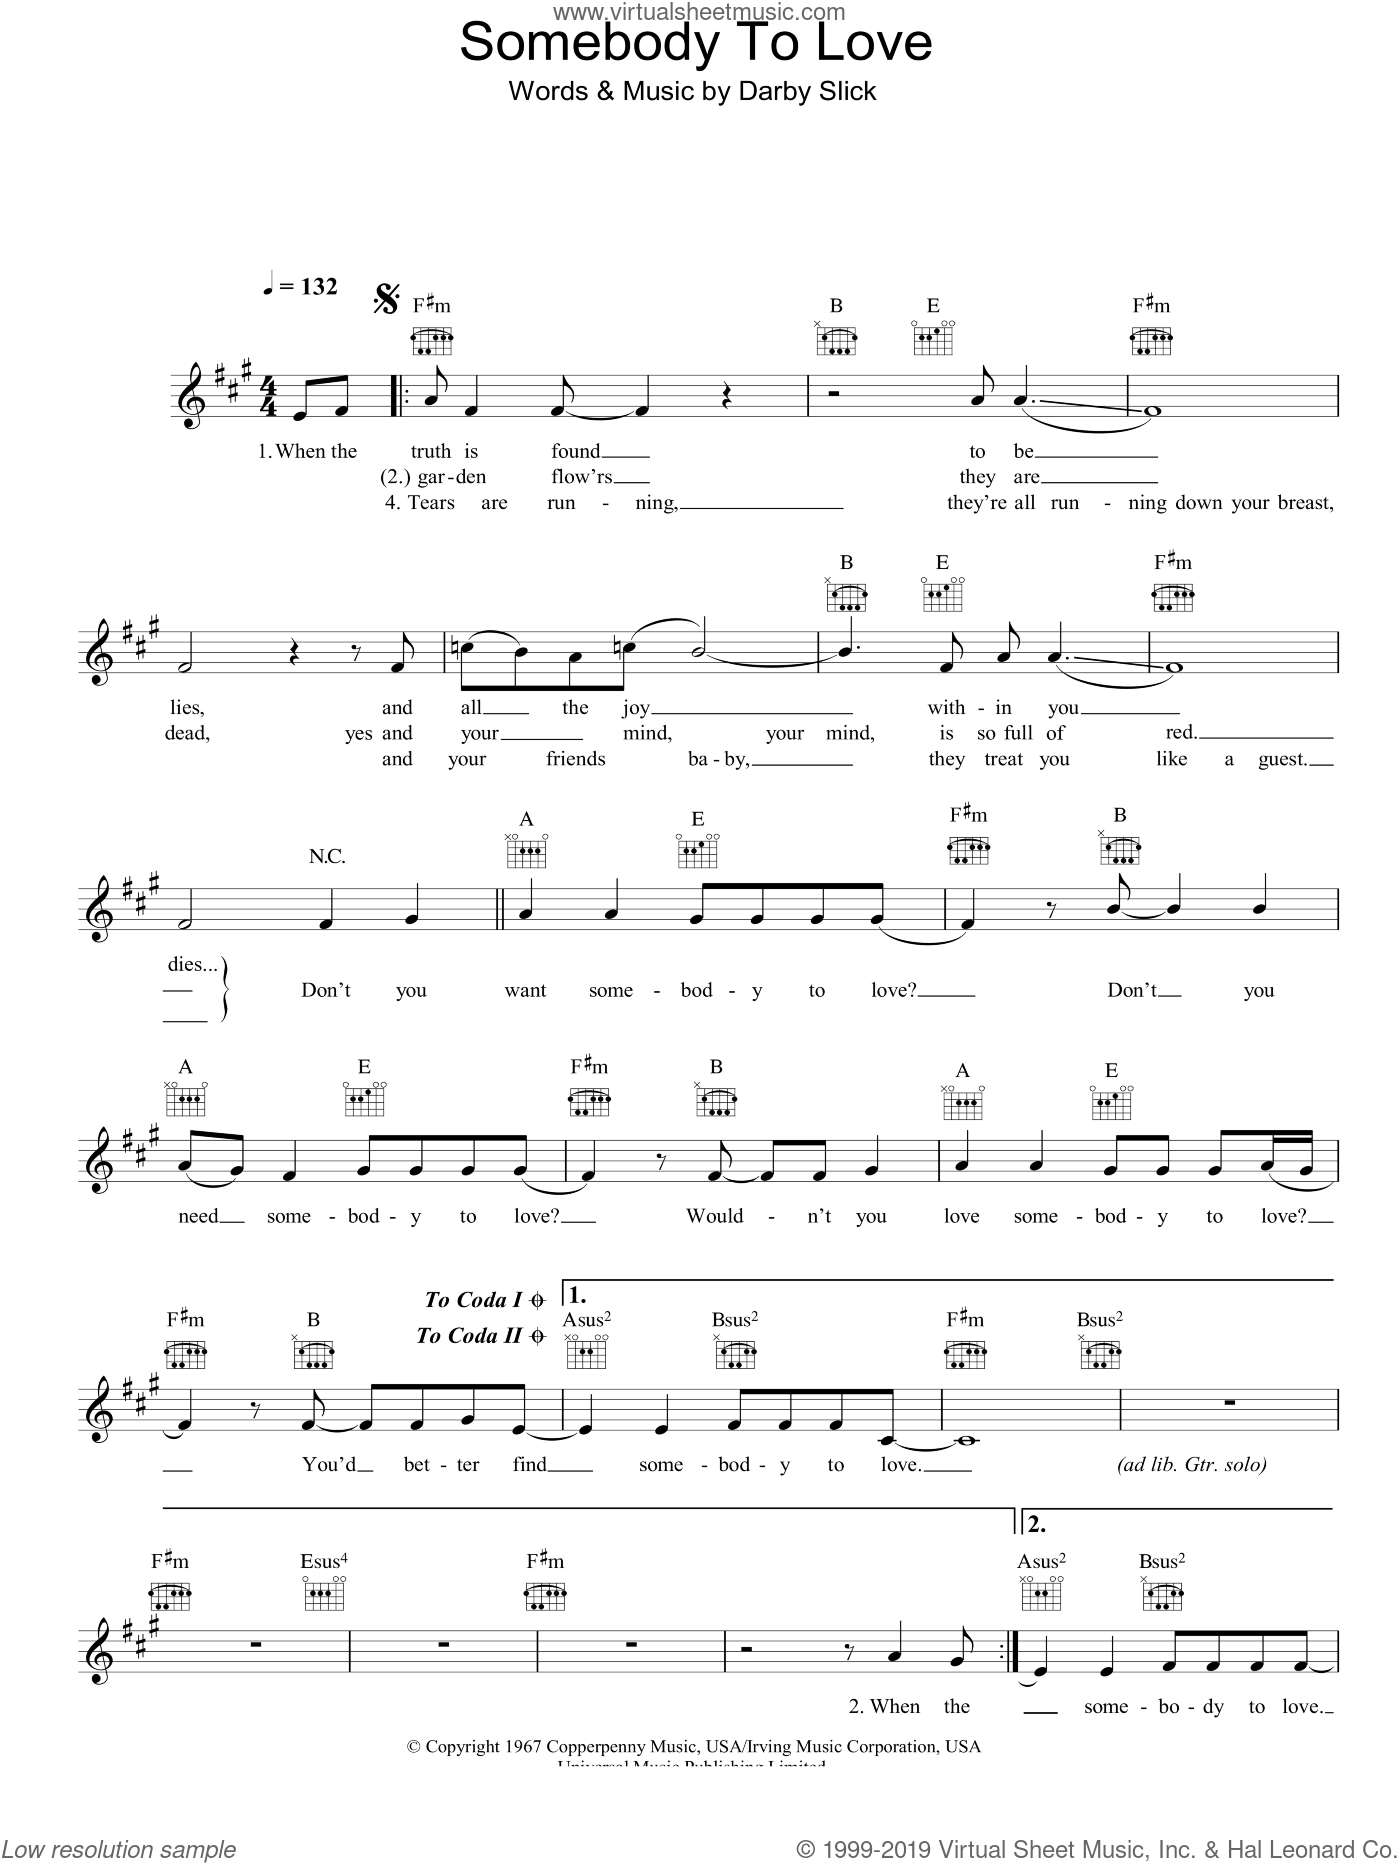 Somebody To Love sheet music for voice and other instruments (fake book) by Darby Slick